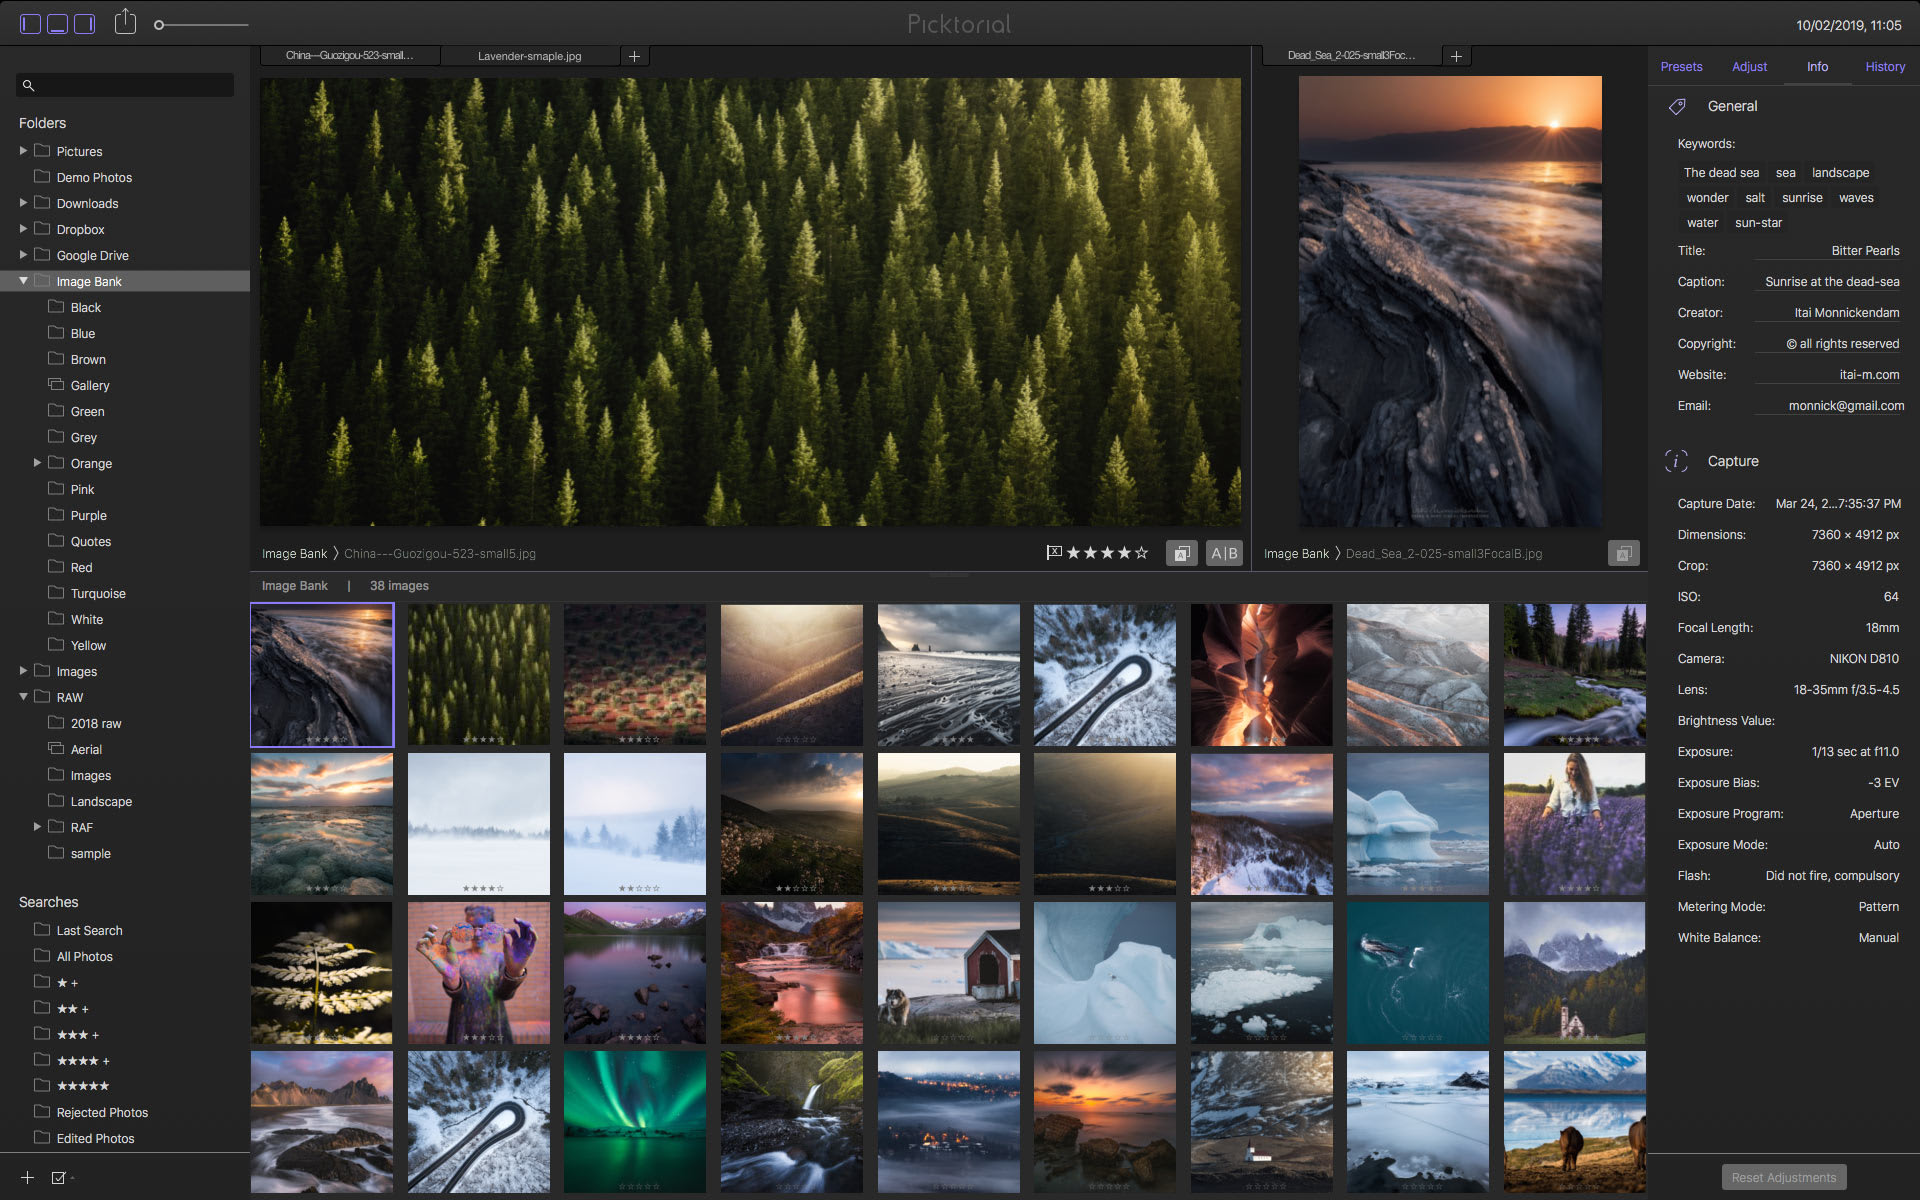 The Best Photo Editing Software that's not Photoshop